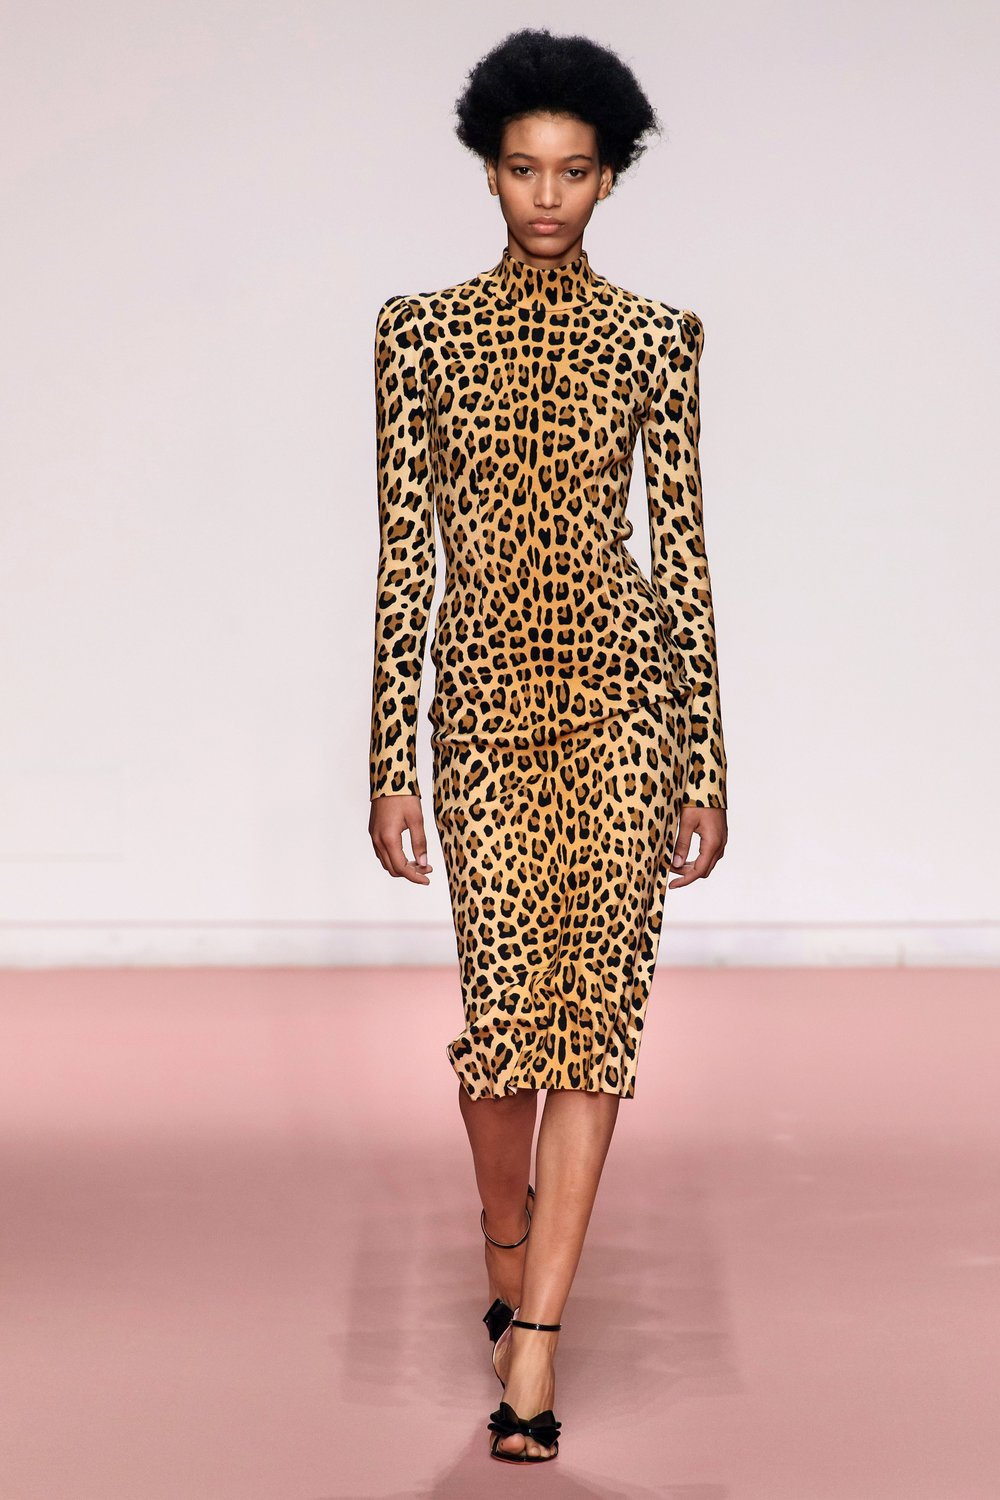 Leopard - The strongest pattern by far, too obvious to mention, knits, dresses, skirts, coats, capes, pants, shoes and accessories (everywhere!) - Blumarine